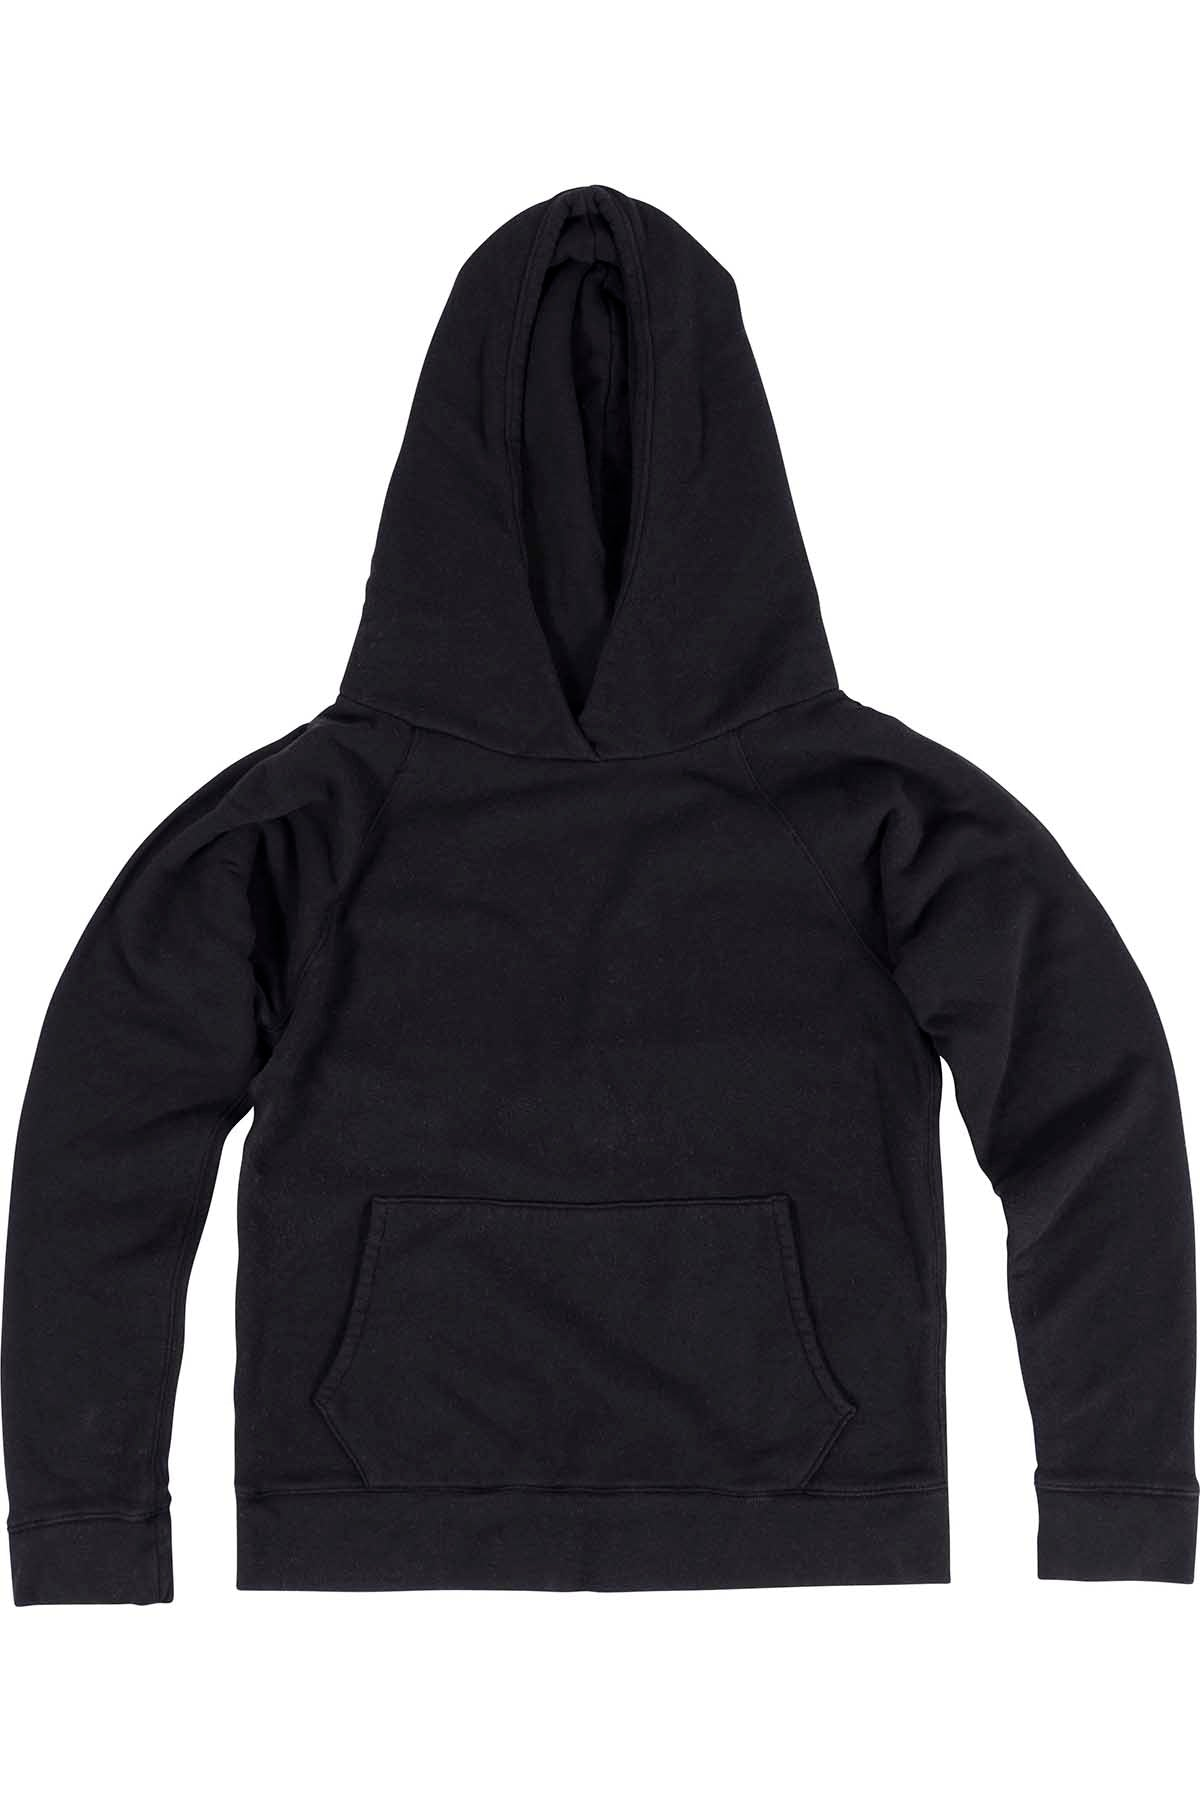 Rxmance Unisex Black Hooded Sweatshirt